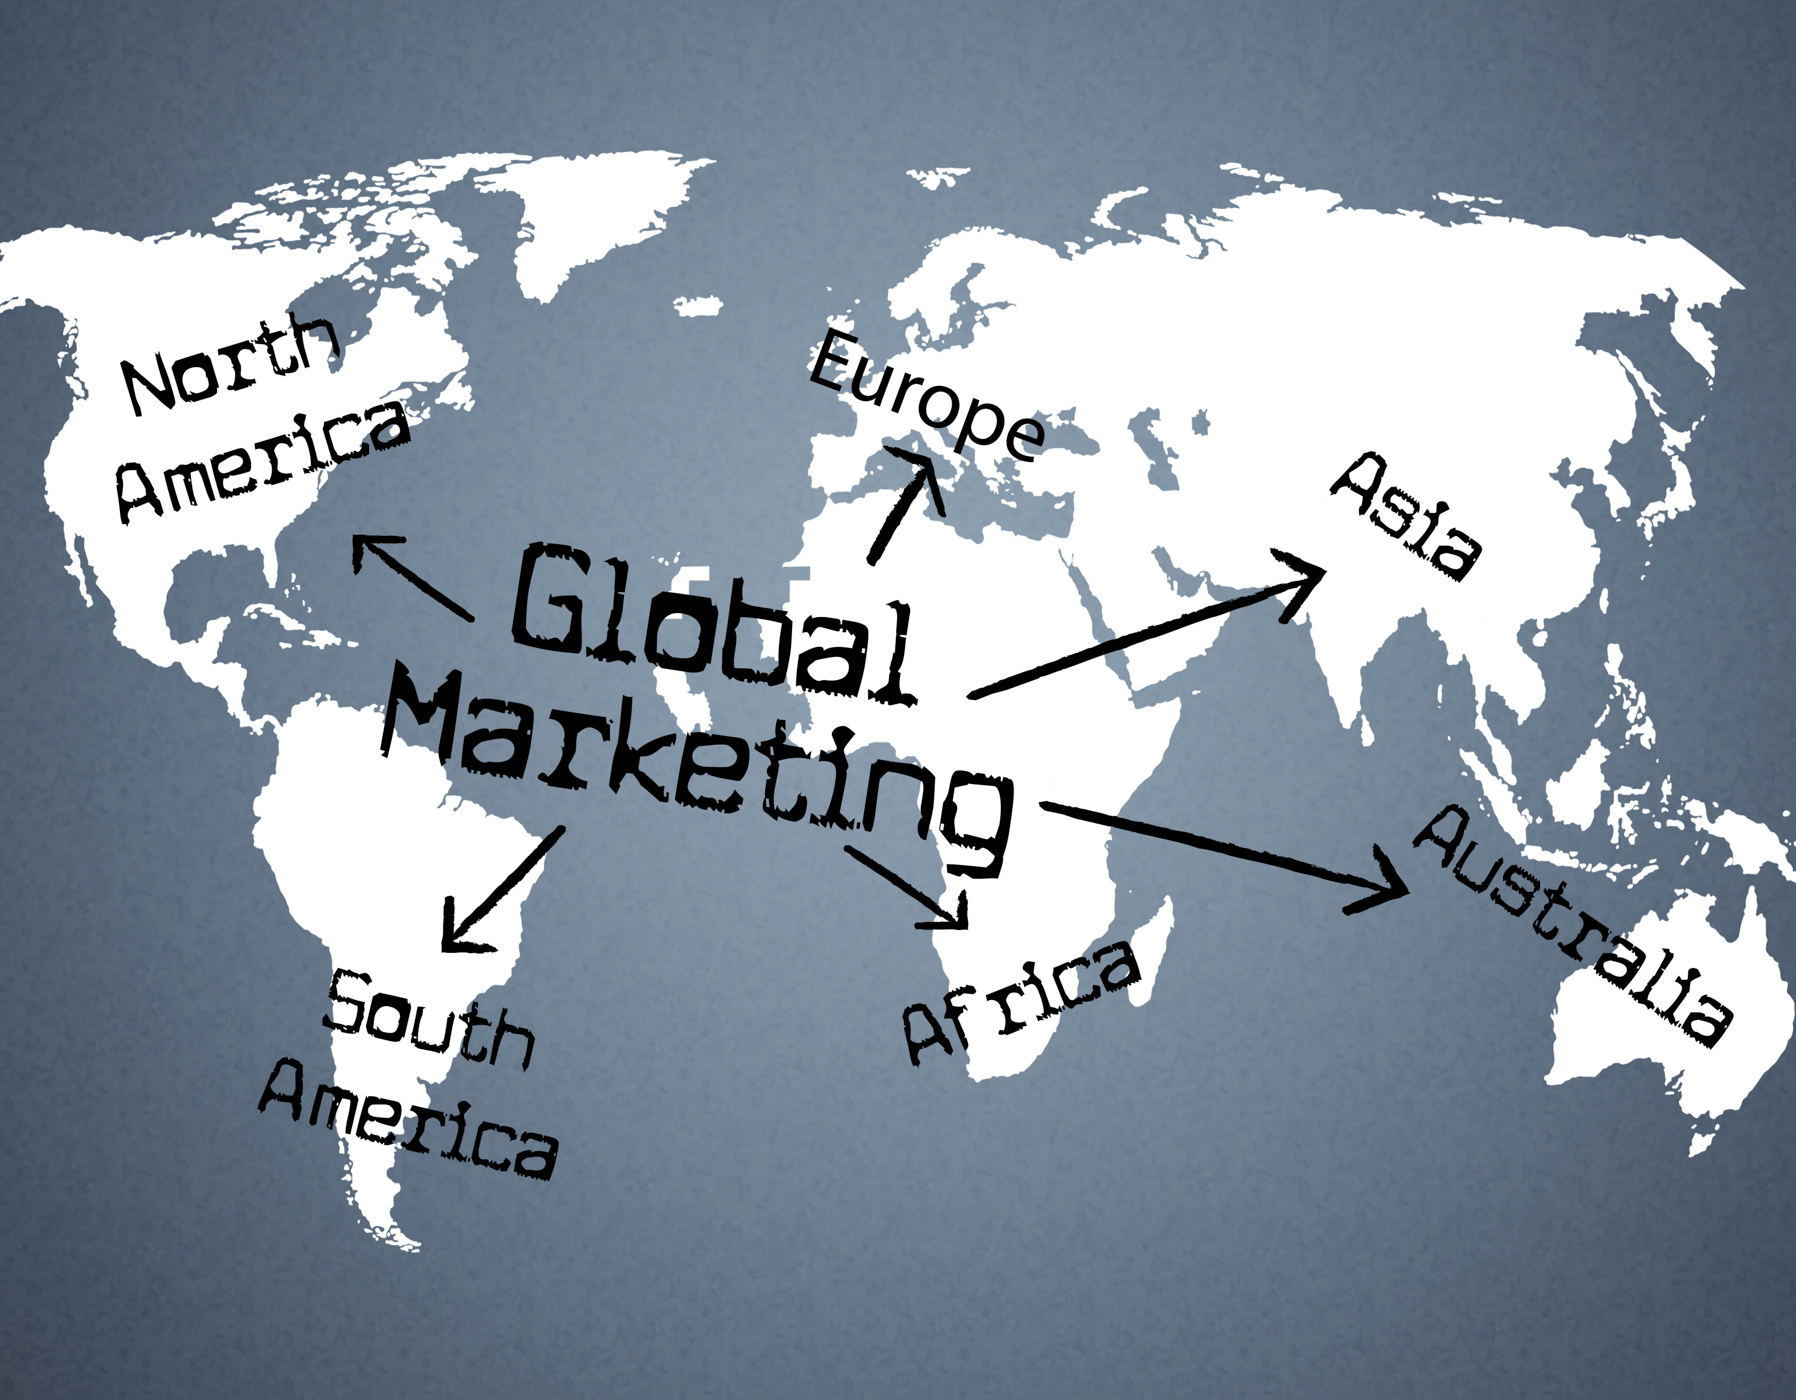 Global marketing indicates planet globalise and globalisation photo